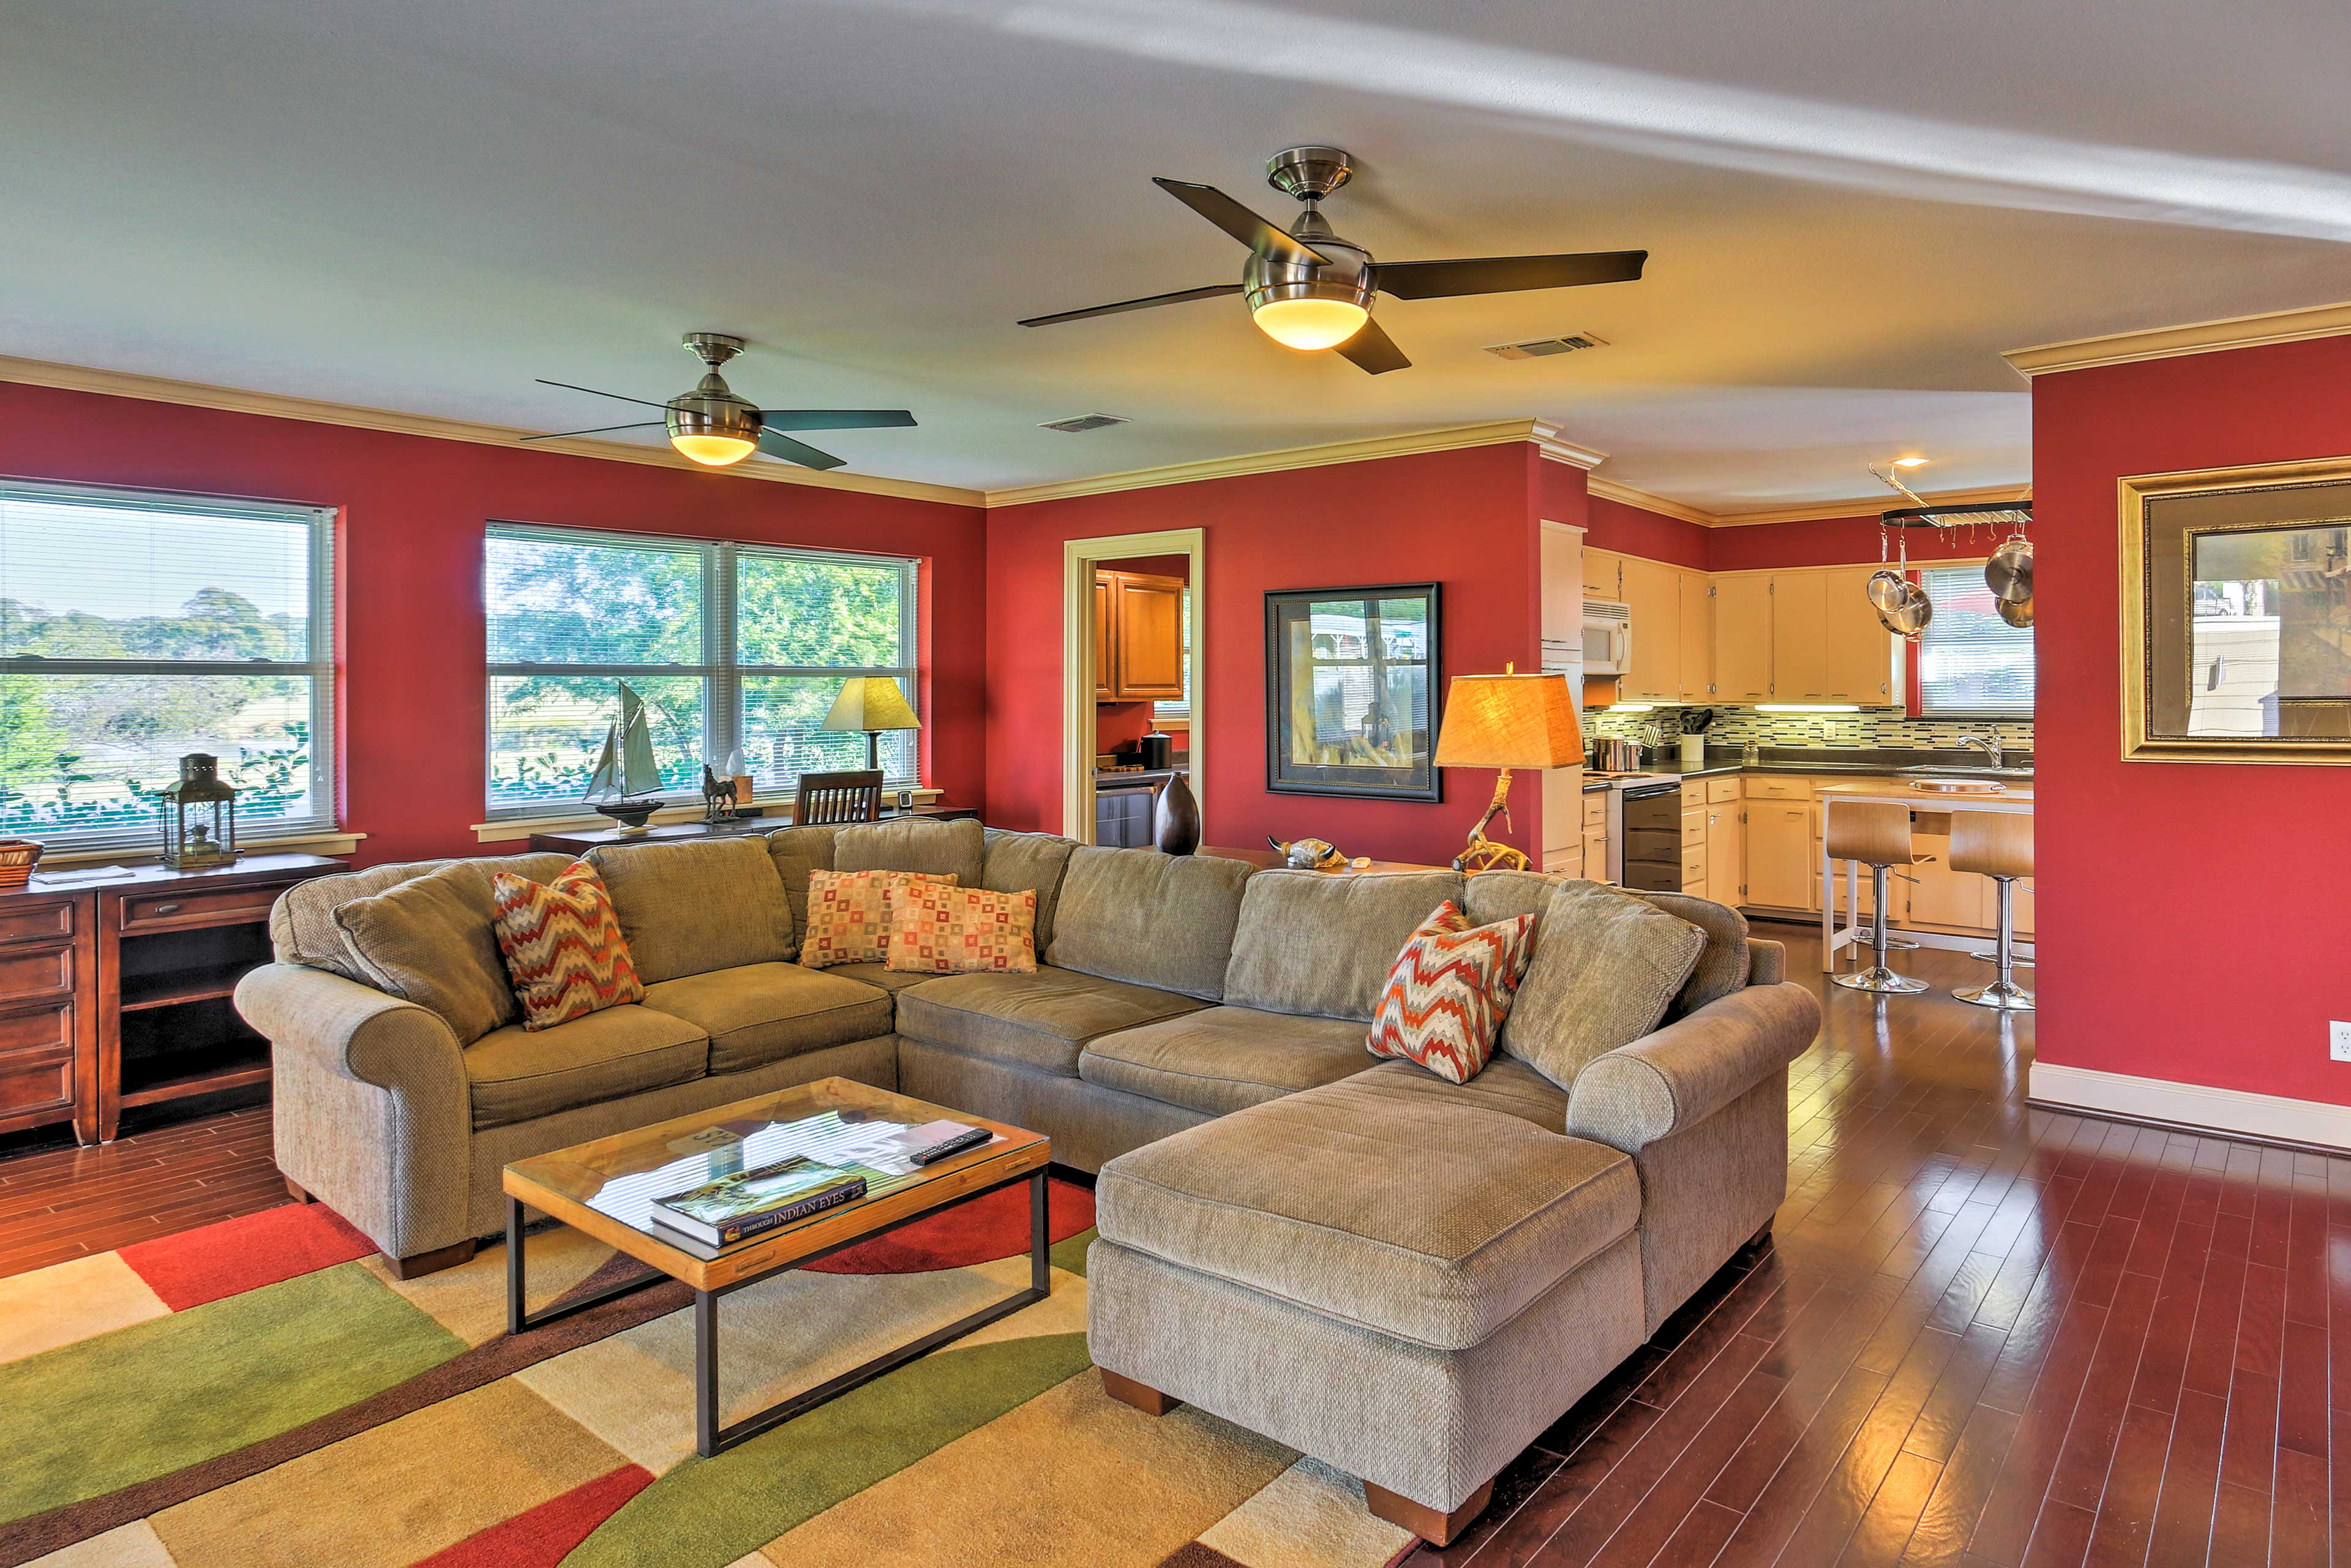 The rich hardwood floors and warm decor will make you feel as though you have never left home.